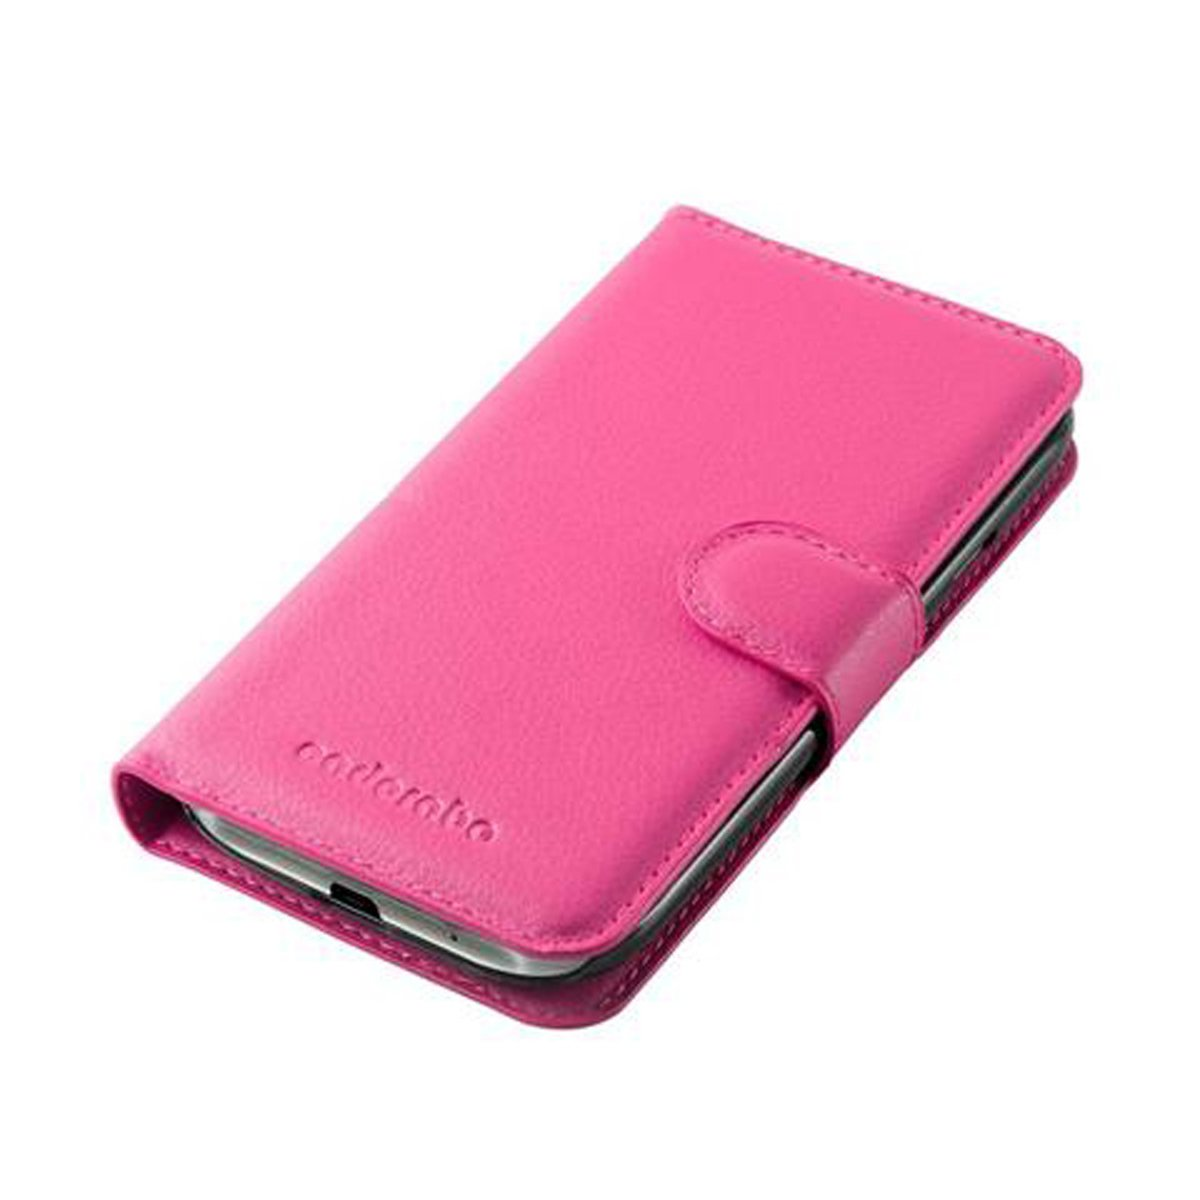 samsung galaxy s4 mini h lle mit standfunktion cherry pink. Black Bedroom Furniture Sets. Home Design Ideas